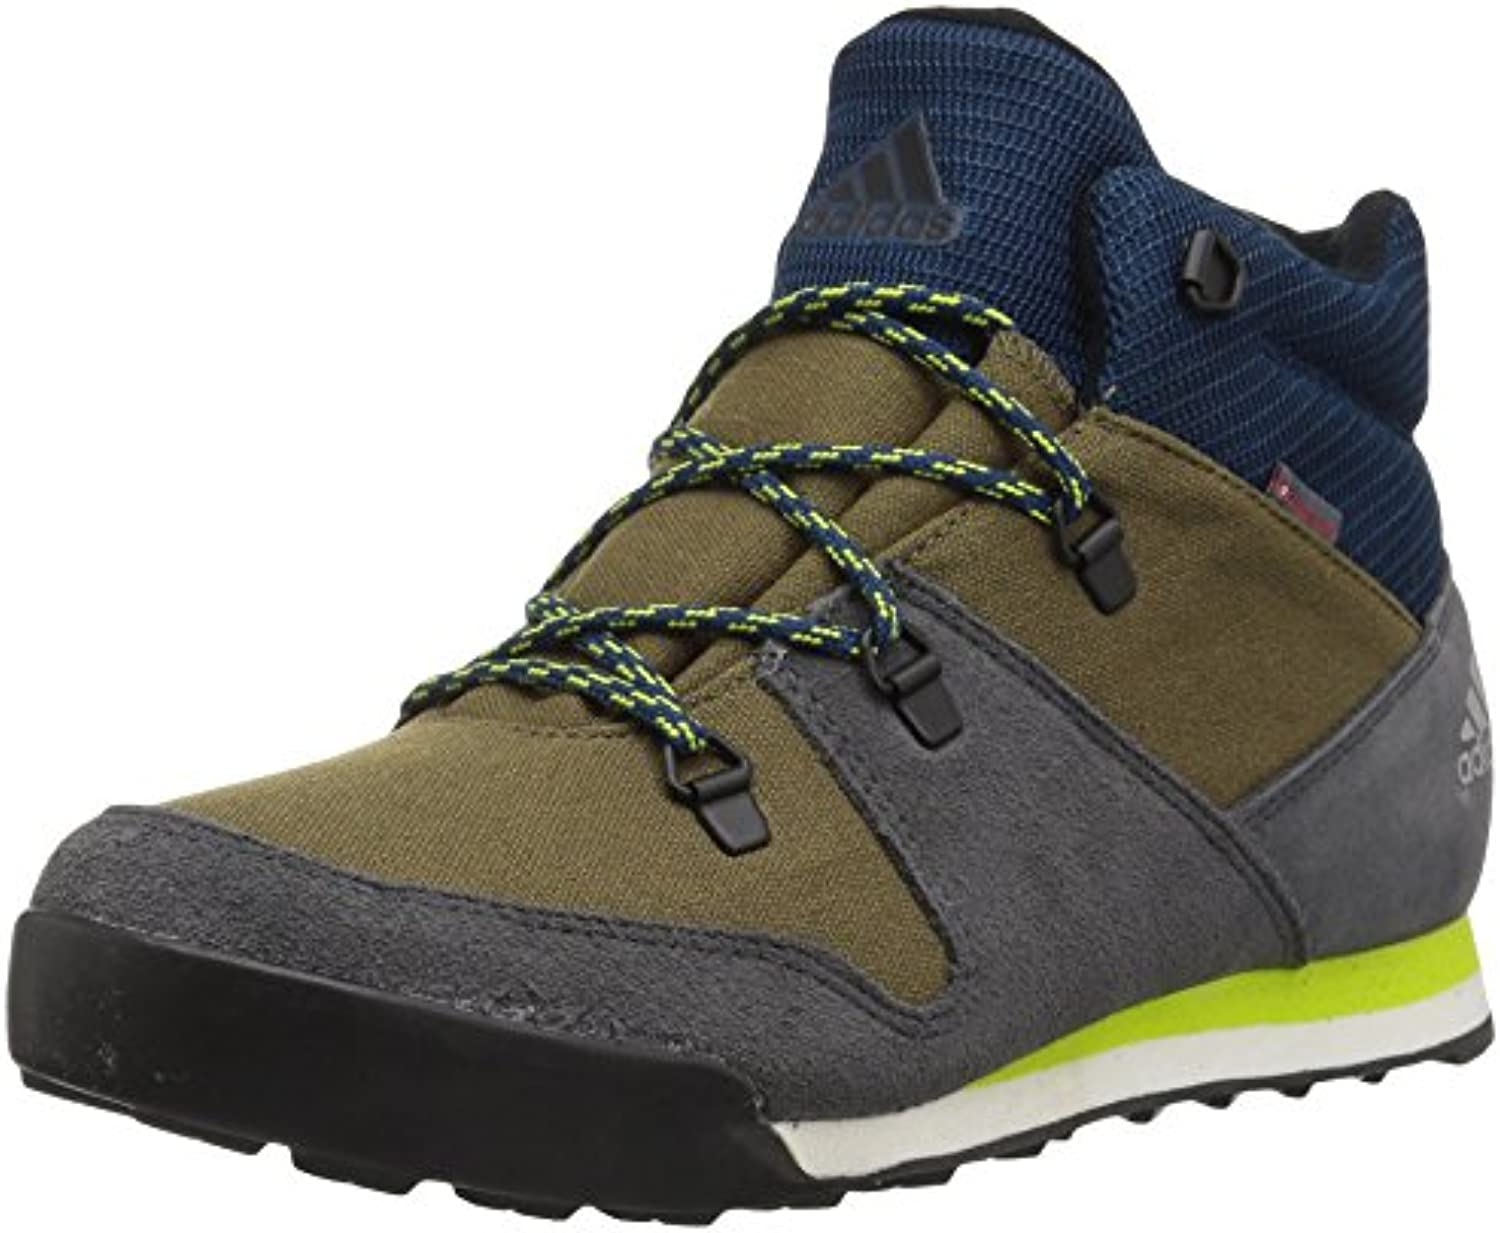 adidas outdoor Unisex-Kids CW Snowpitch Snowpitch Snowpitch K Hiking Shoe, Trace Cargo/Utility Black/Semi Solar Yellow, 11.5 Child... f7c017